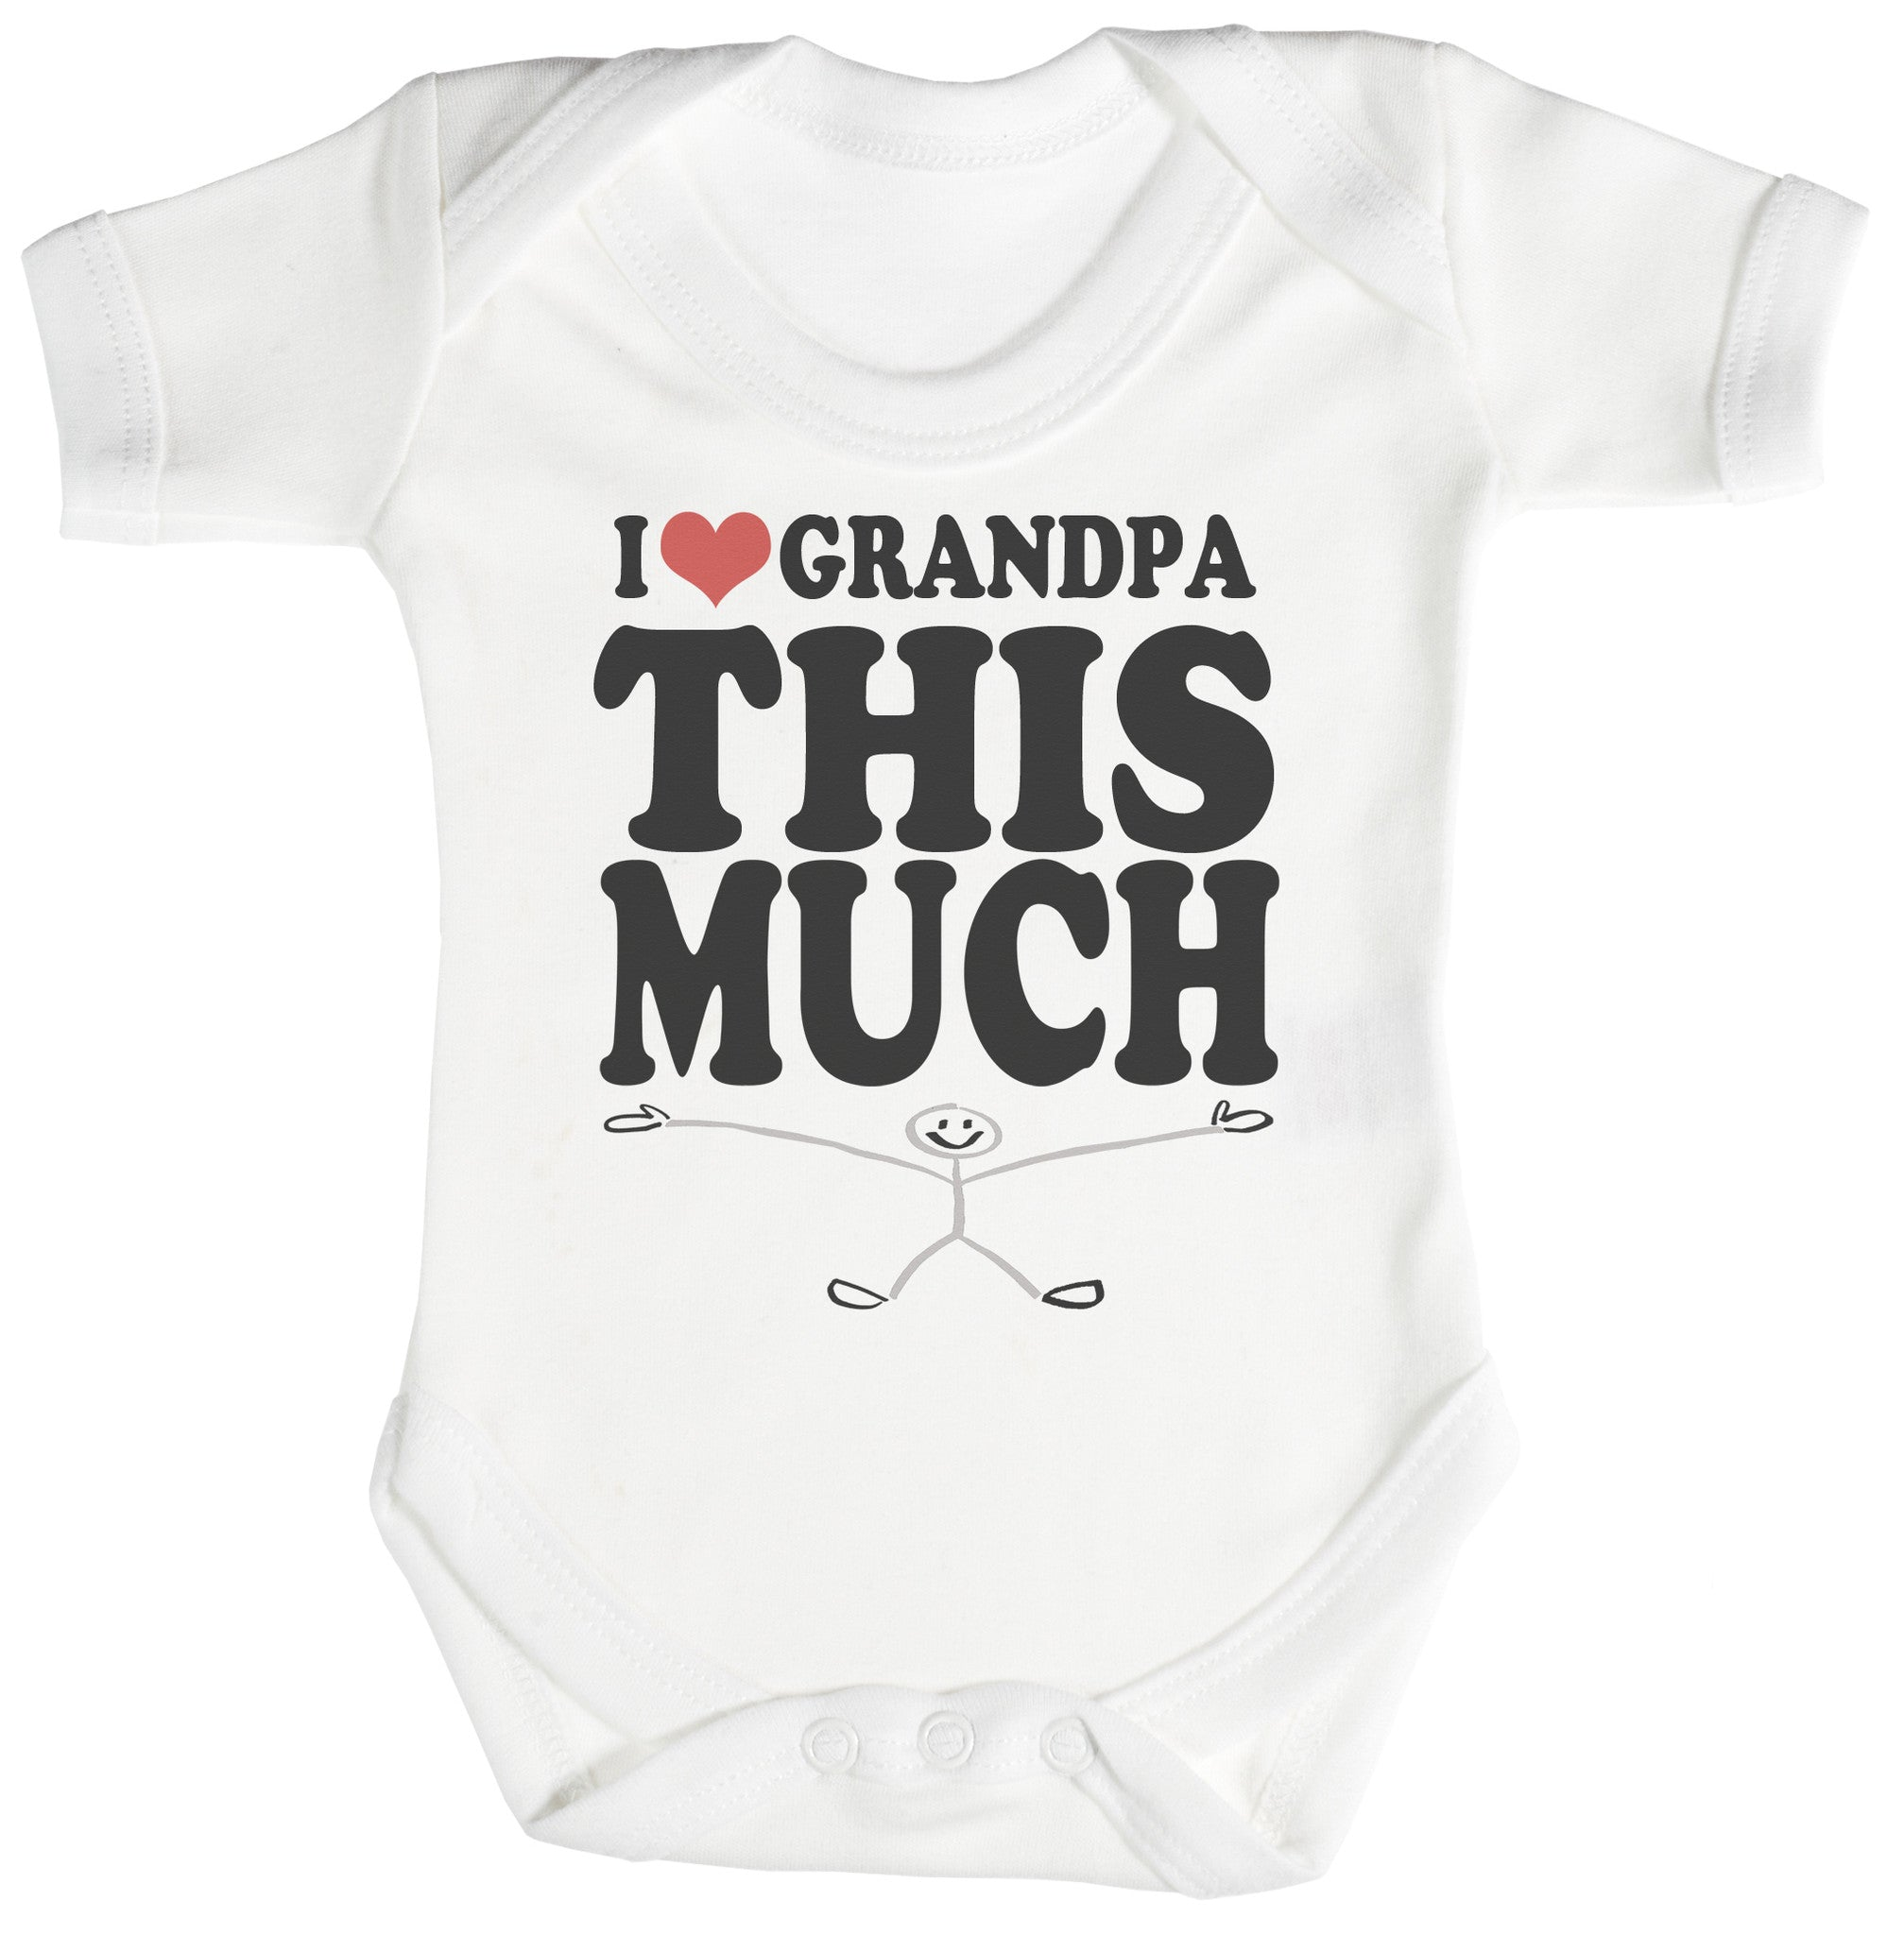 Love Grandpa This Much Baby Bodysuit / Babygrow